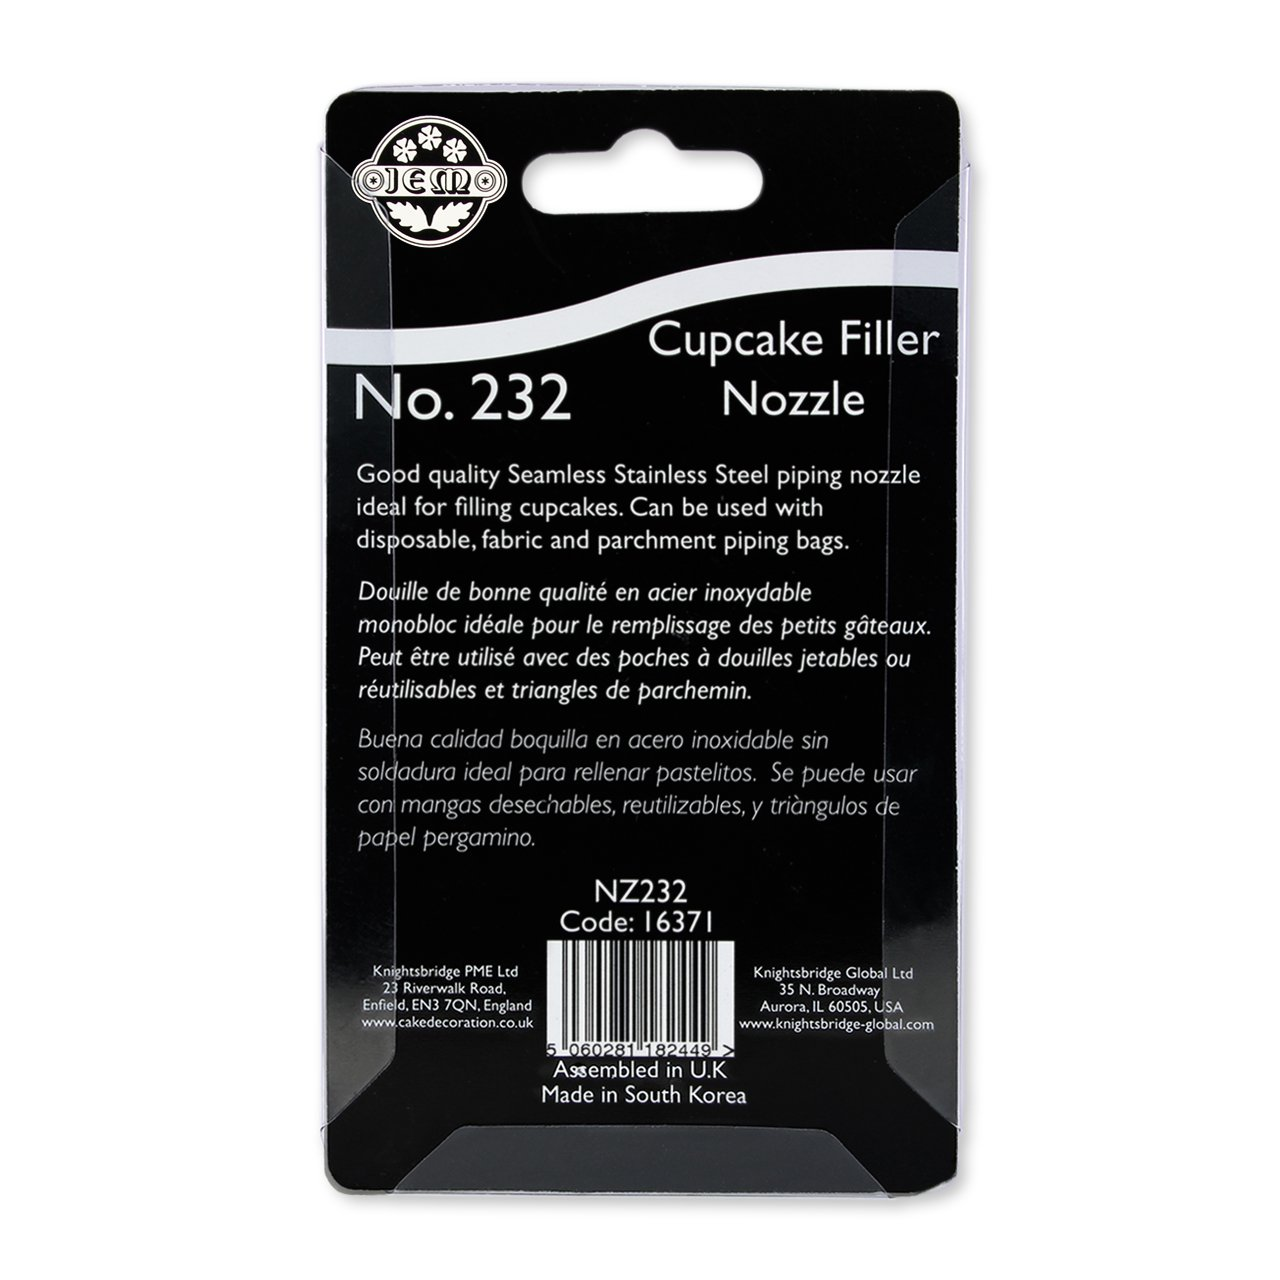 Amazon.com: JEM Cupcake/Doughnut Filler Tube Nozzle #232 Decorating Tip Standard Silver: Cake Testers: Kitchen & Dining